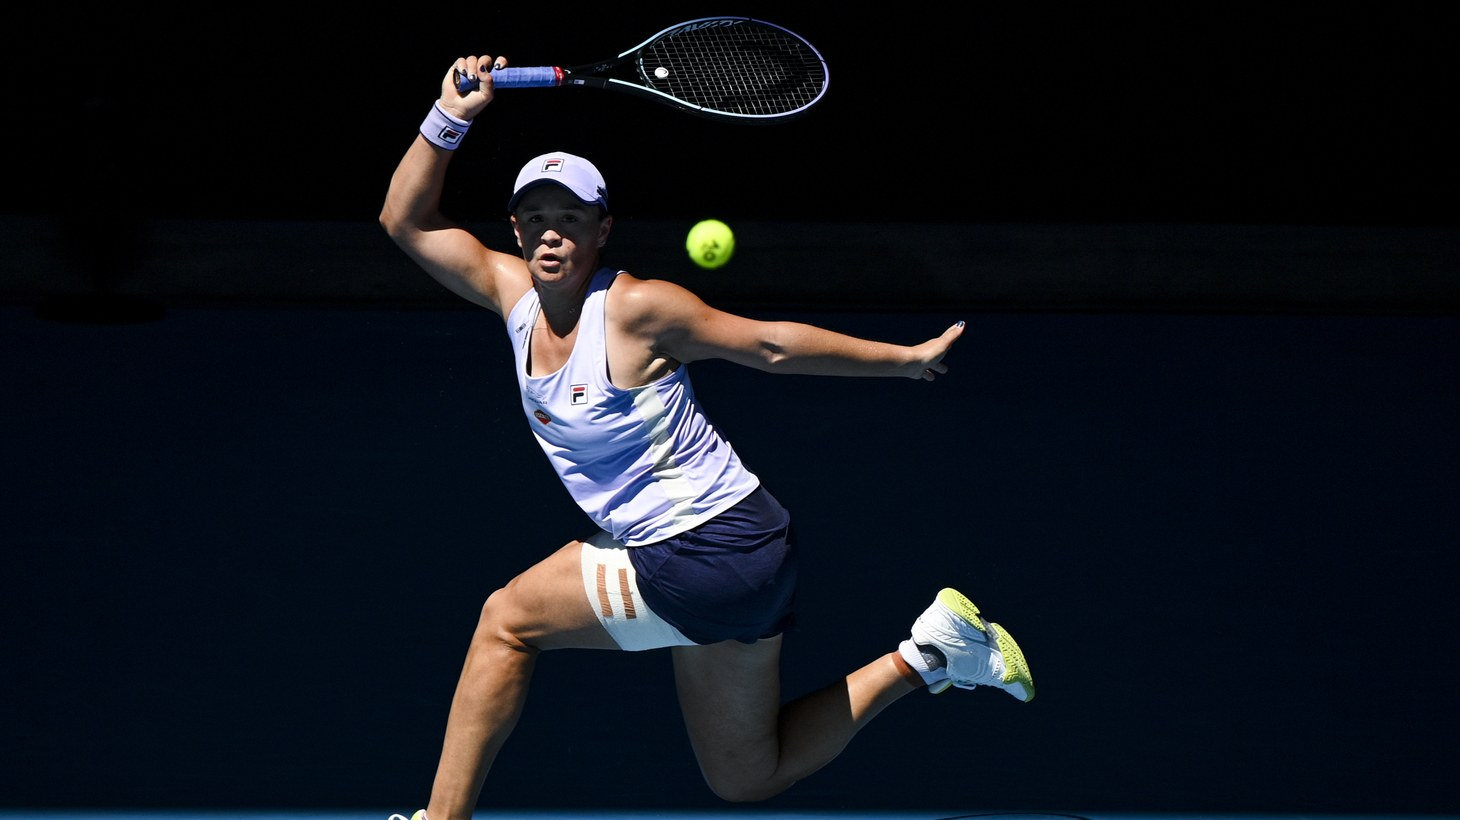 Australia's Ash Barty is the frontrunner to win the U.S. Open this year, says Ben Rothenberg, who's reporting on the U.S. Open for New York Times. In this photo, Barty plays during the quarter finals women's singles match against Karolina Muchova of the Czech Republic on Day 10 of the Australian Open at Melbourne Park in Melbourne, February 17, 2021.